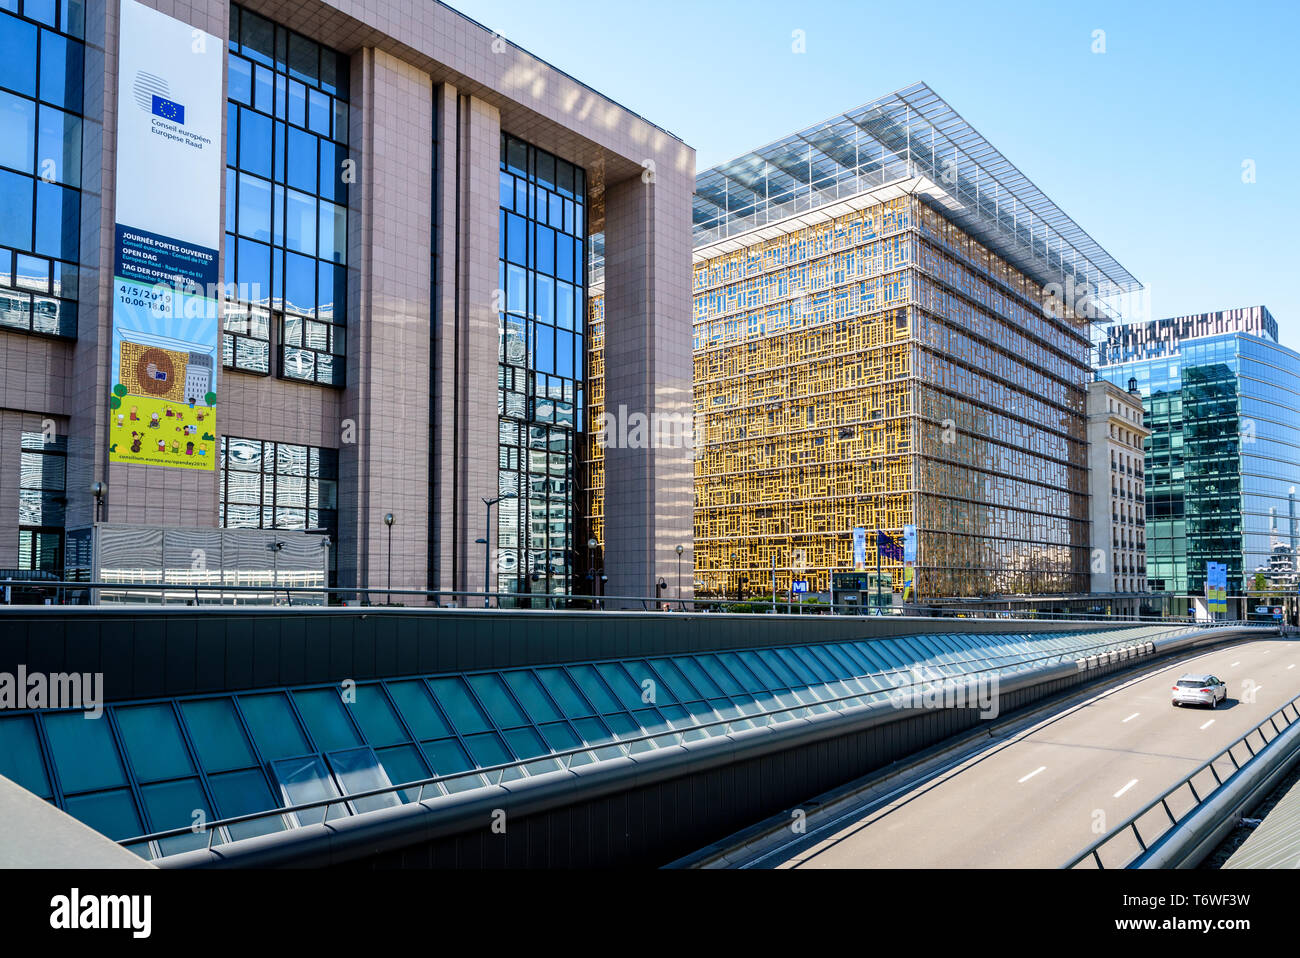 The Justus Lipsius building (left) and Europa building (right), seat of the European Council in Brussels, Belgium, along the road rue de la Loi below. - Stock Image